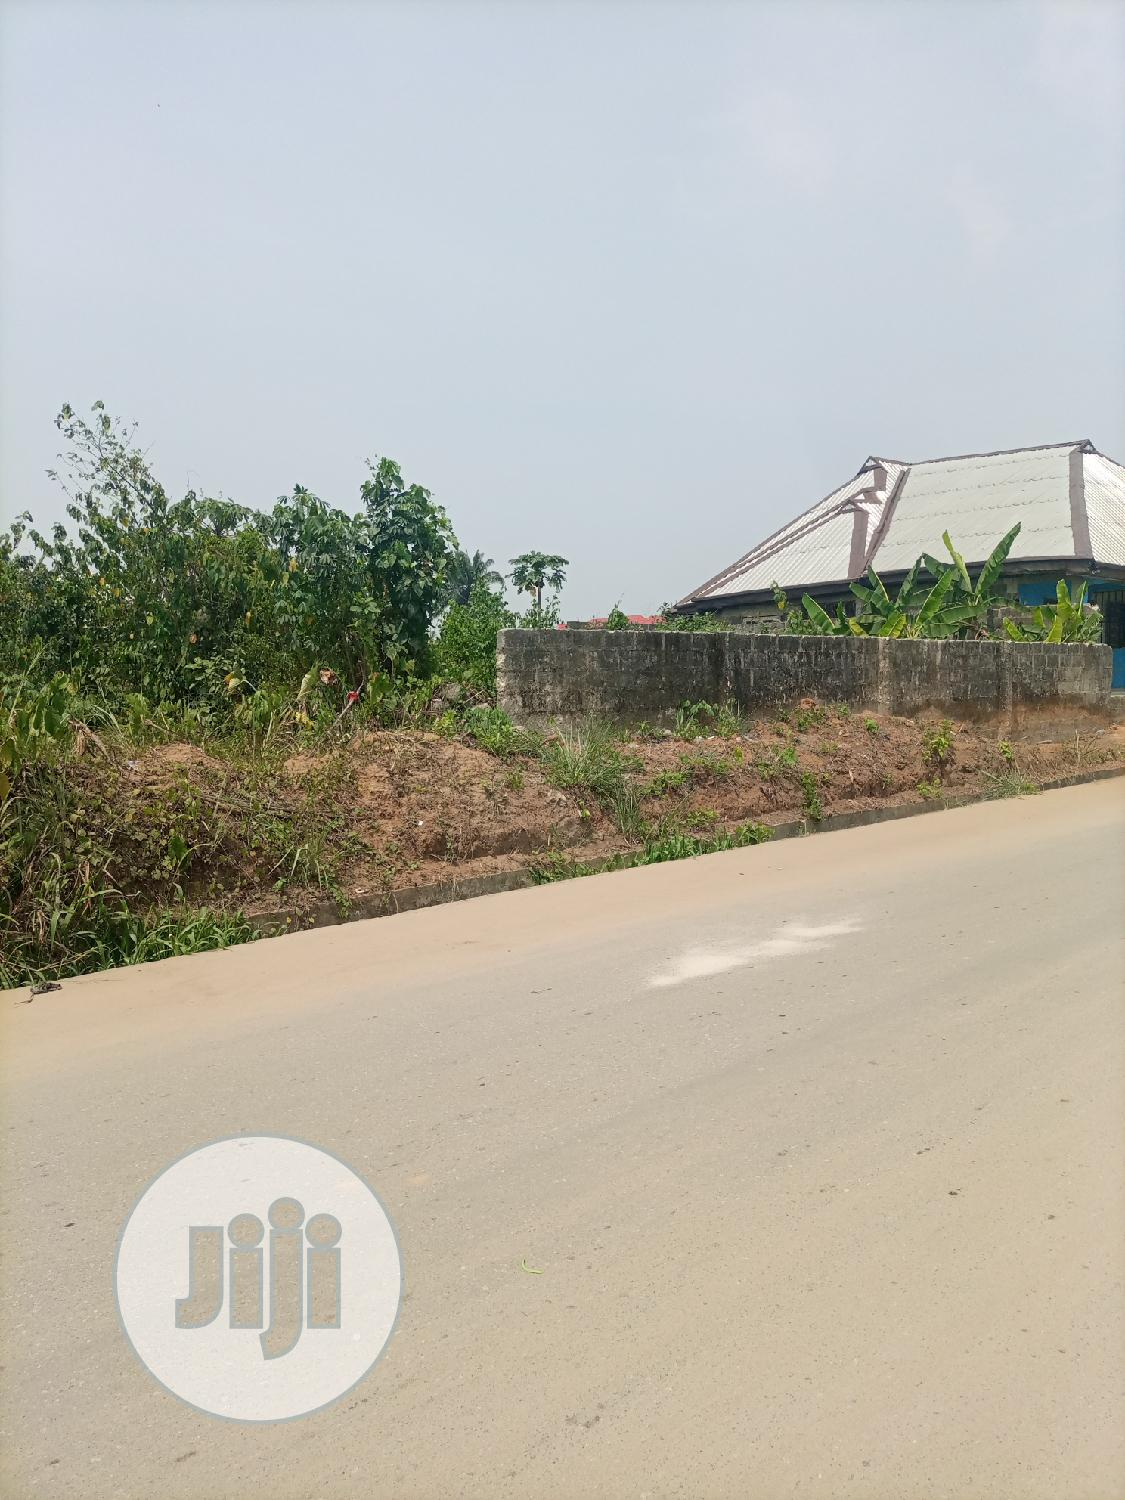 1/2 Plots of Lands at Rumunduru New Layout   Land & Plots for Rent for sale in Obio-Akpor, Rivers State, Nigeria